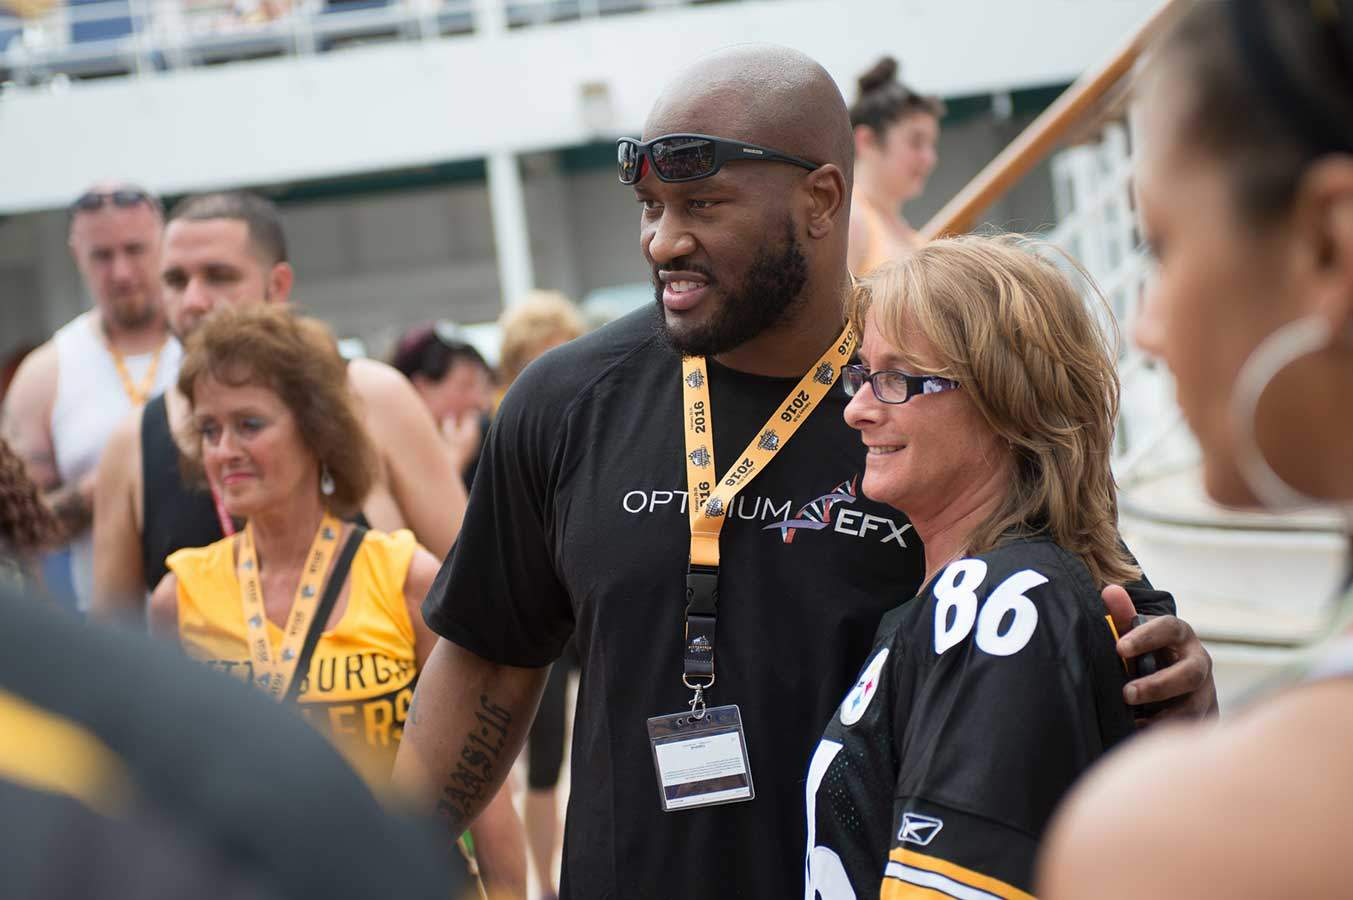 13_2016_legends_of_pittsburgh_cruise_photo